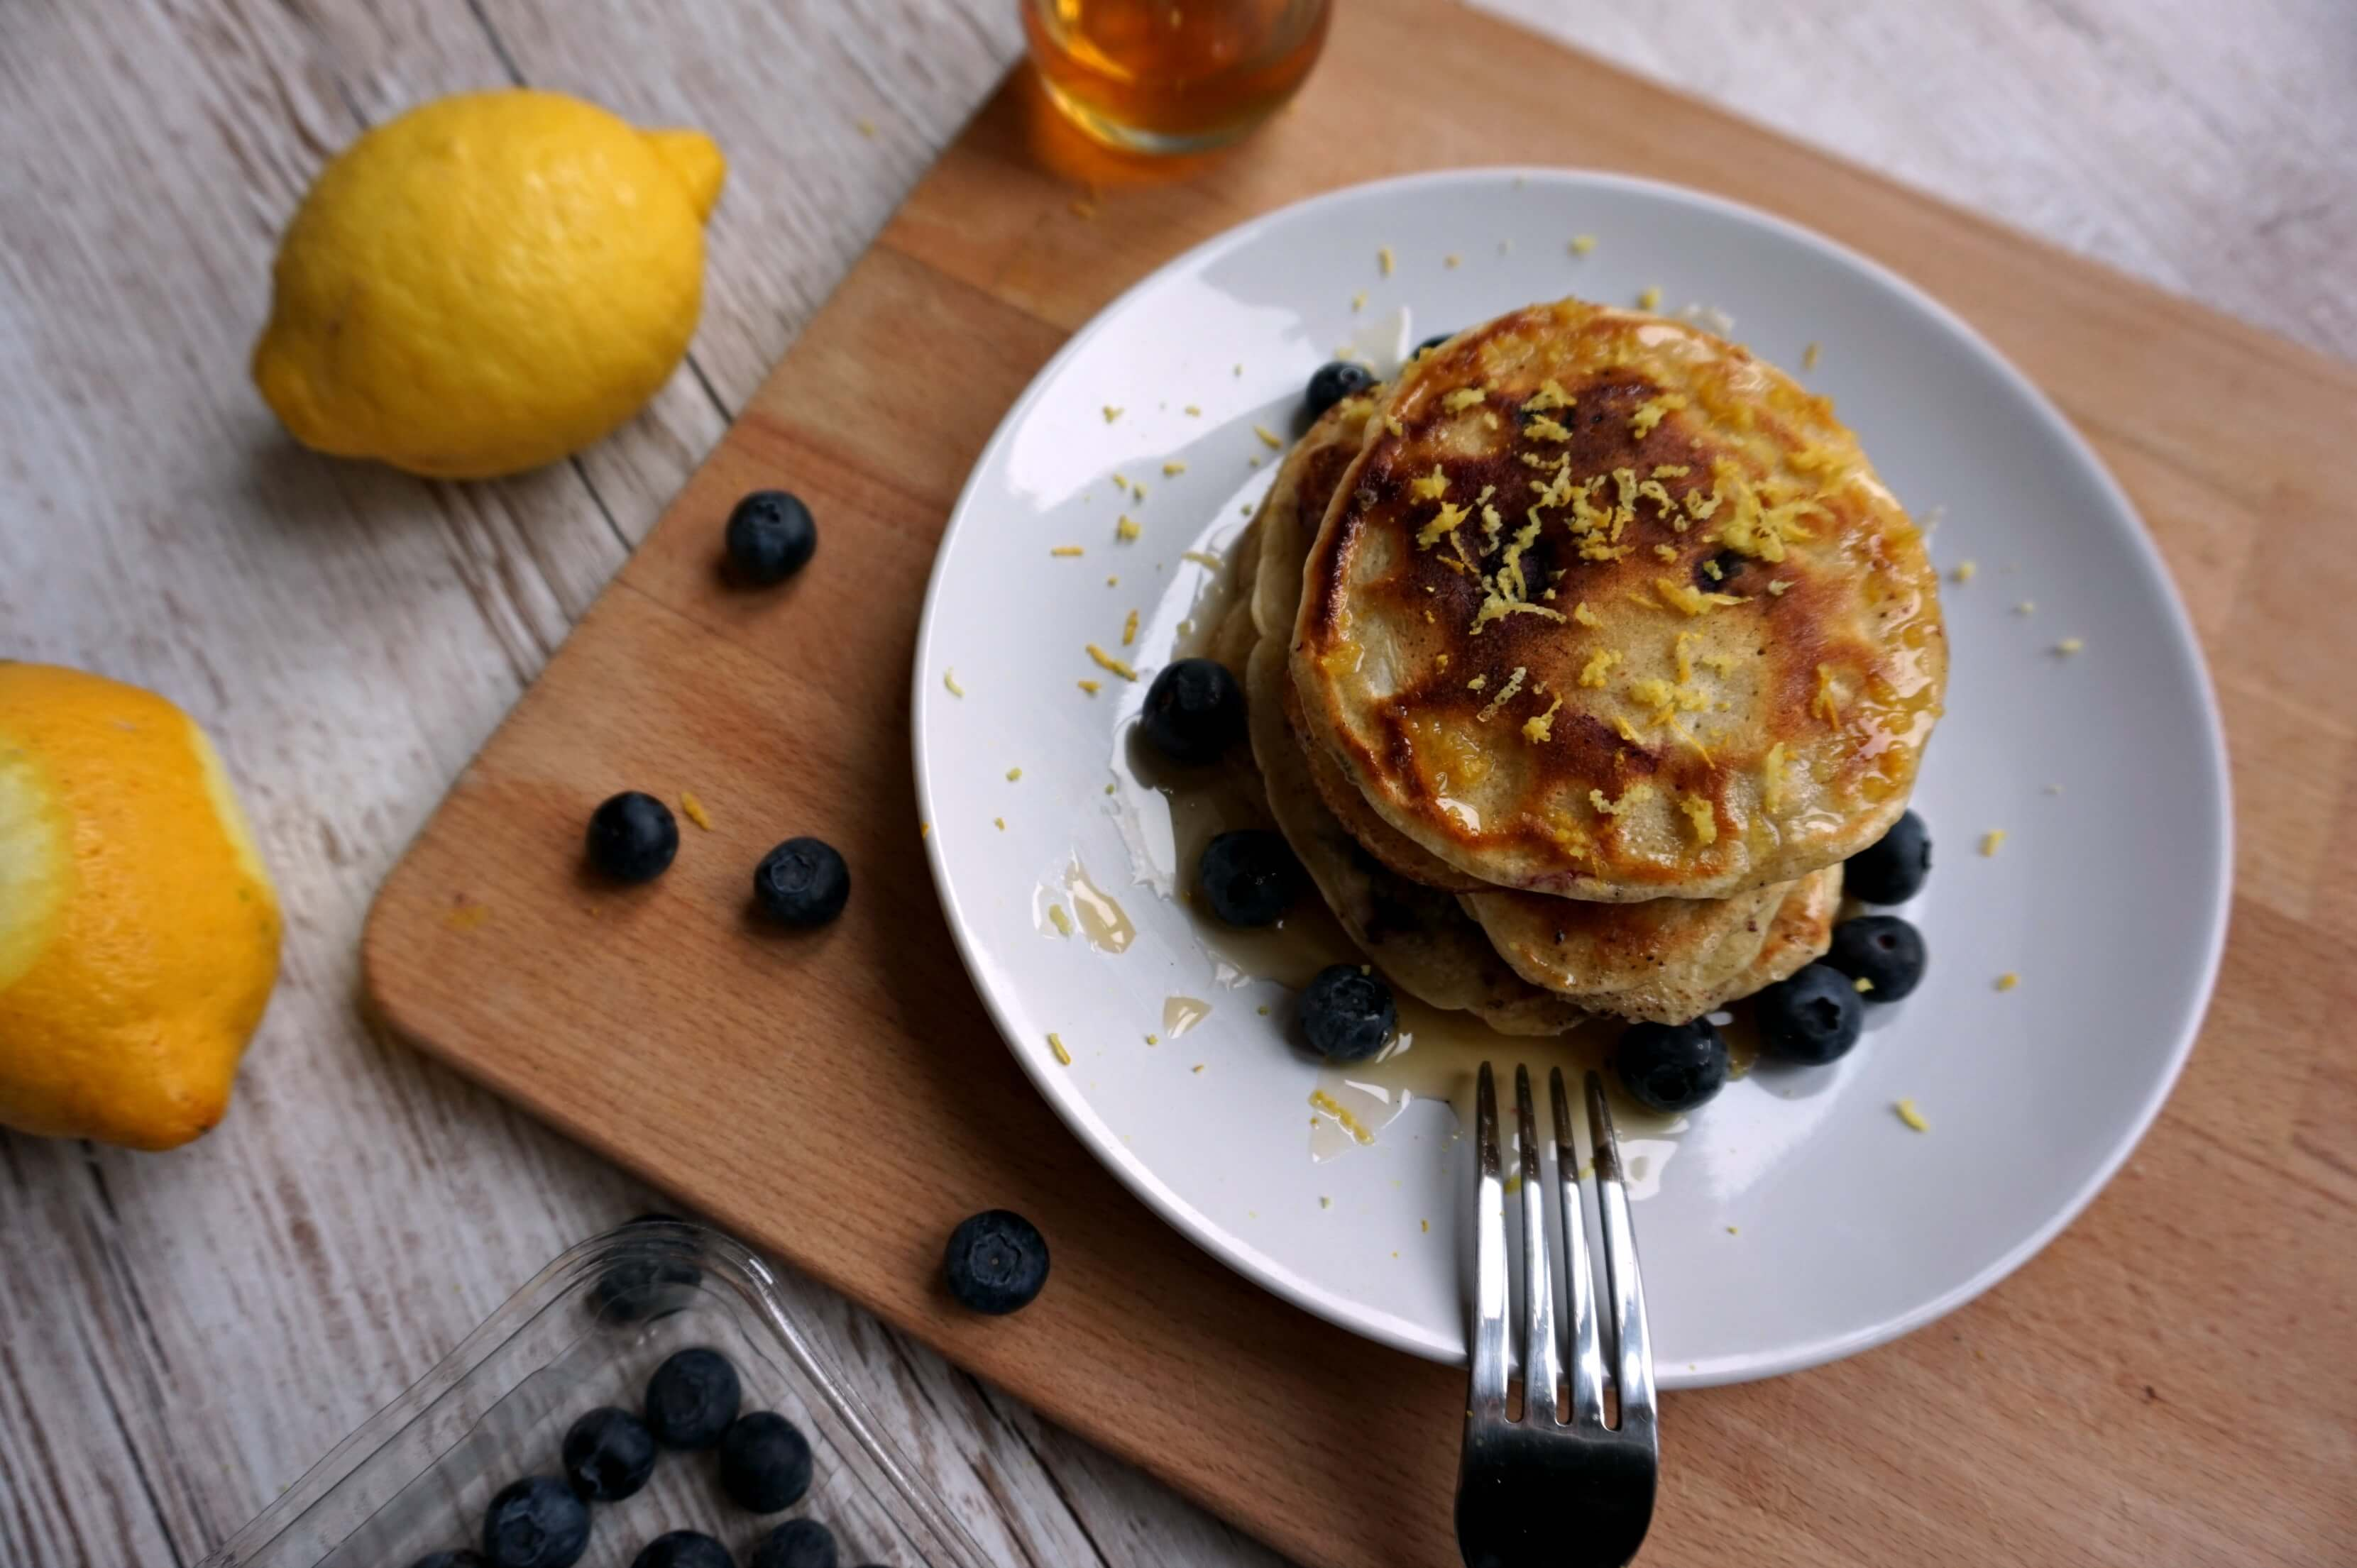 Blueberry and Cinnamon Pancakes